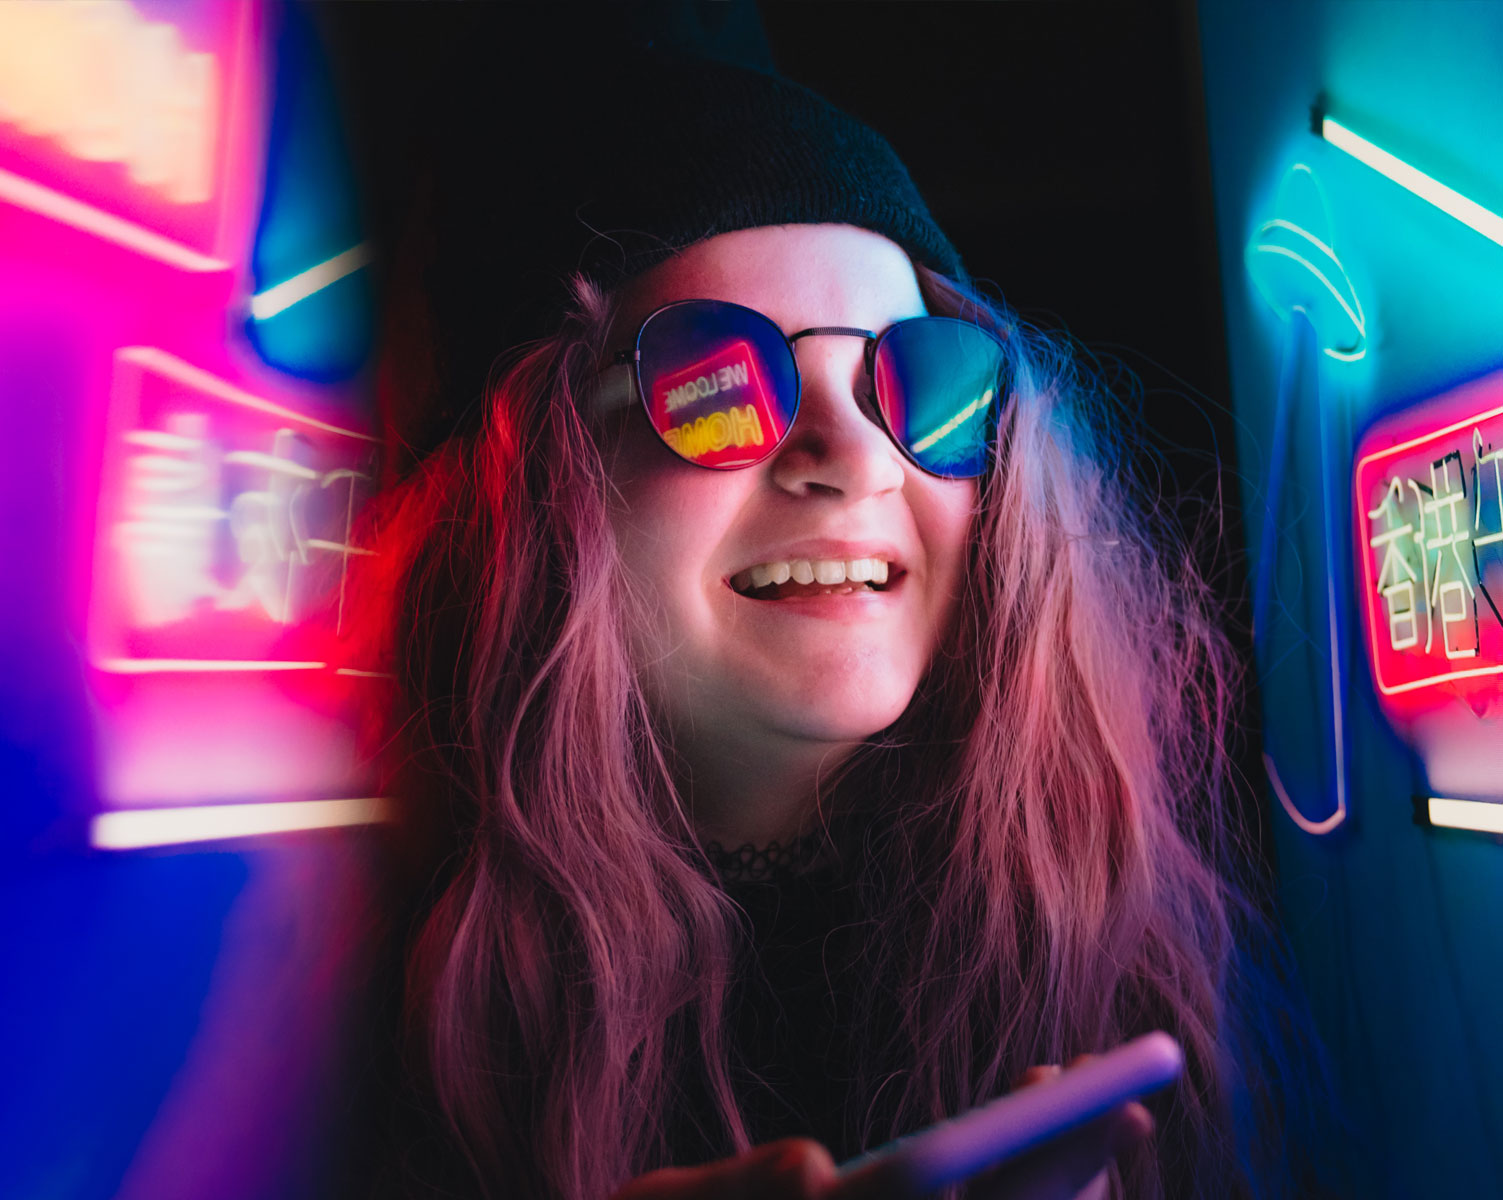 teenager-girl-at-neon-lights-P8PCAD9